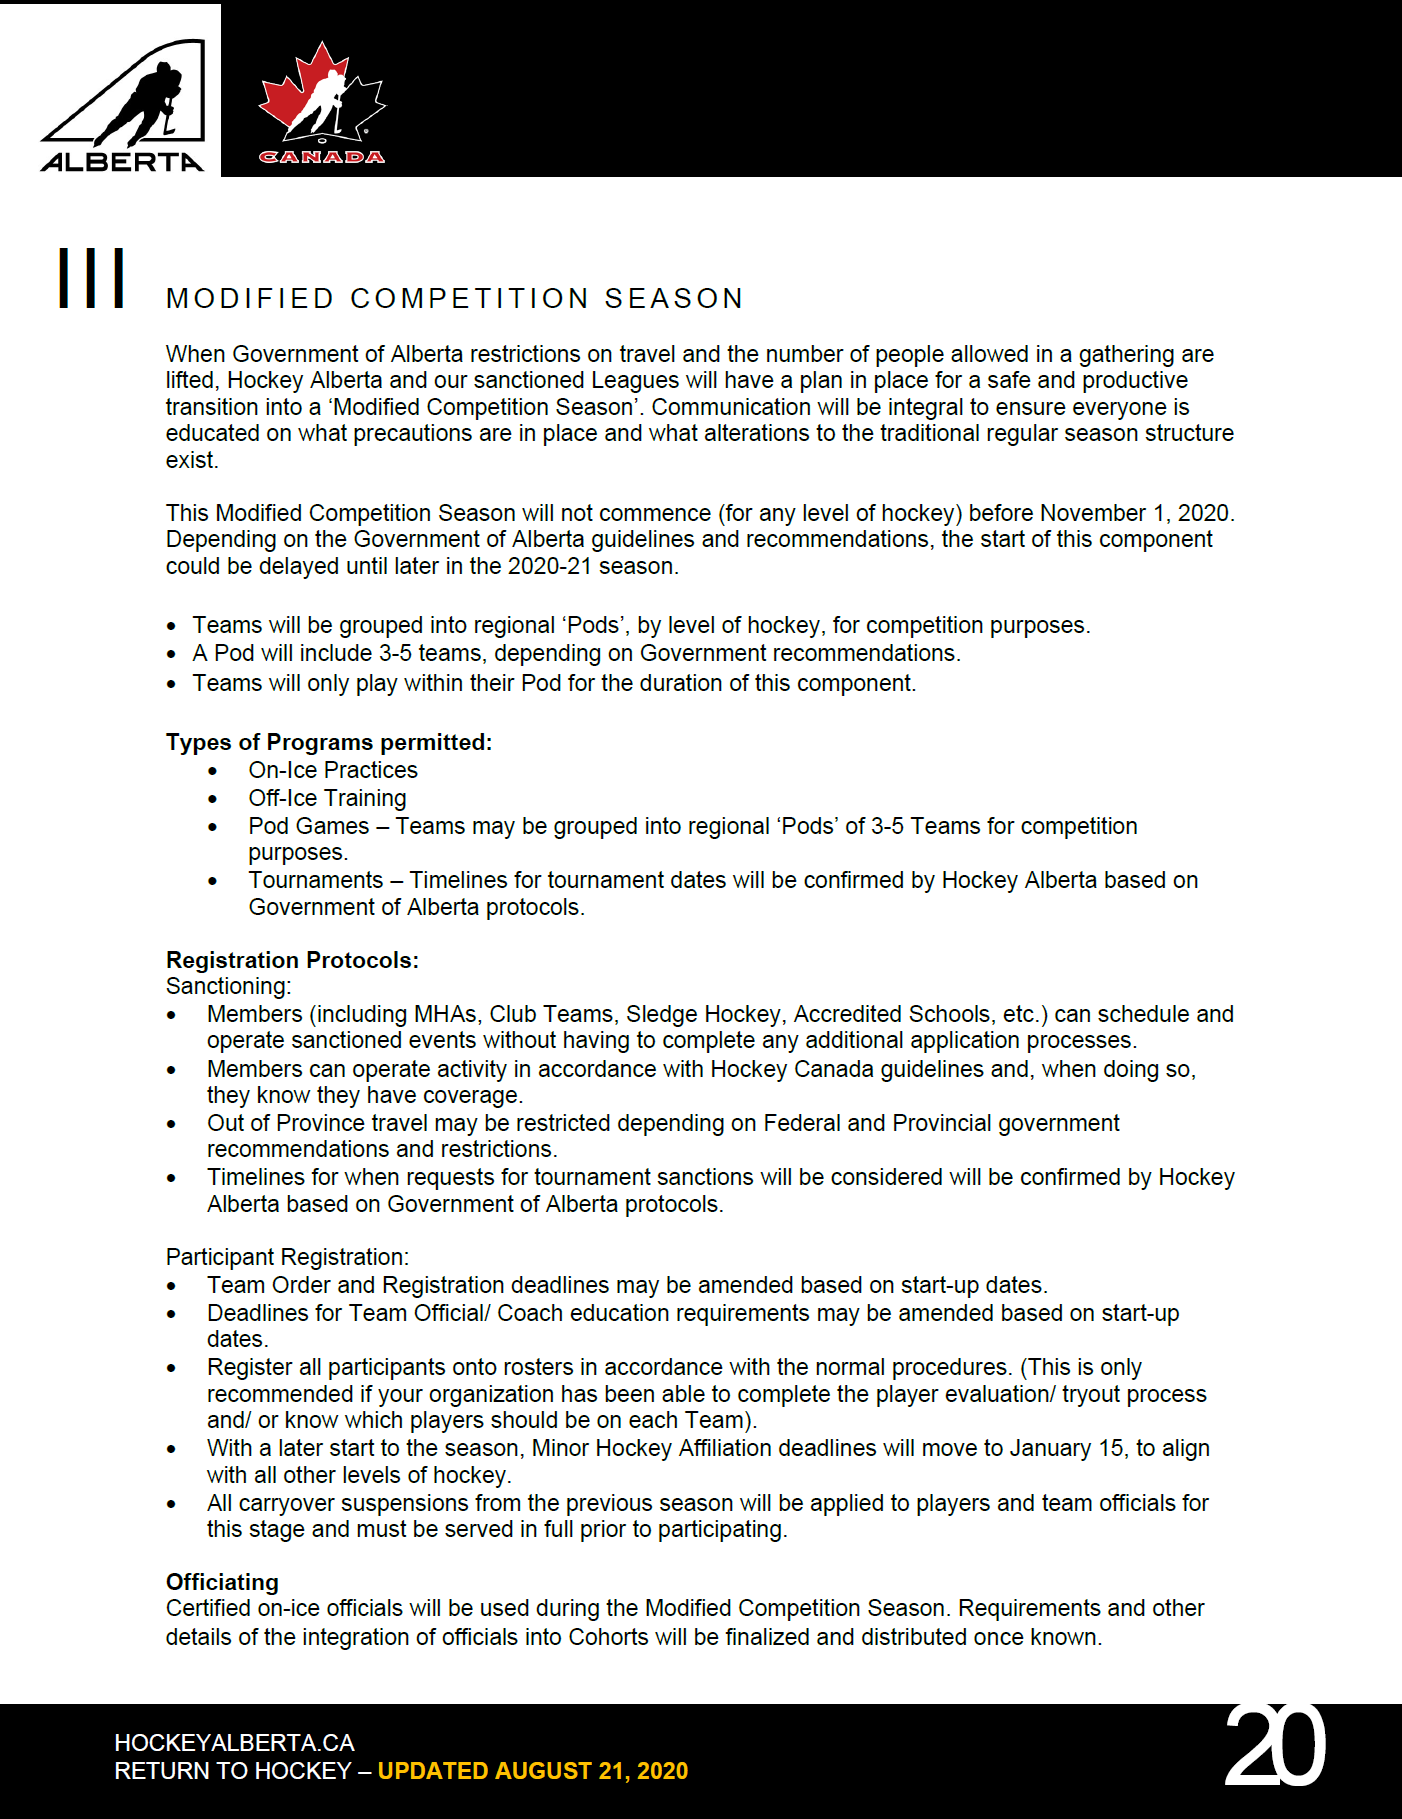 Hockey Alberta Modified Competition guidelines